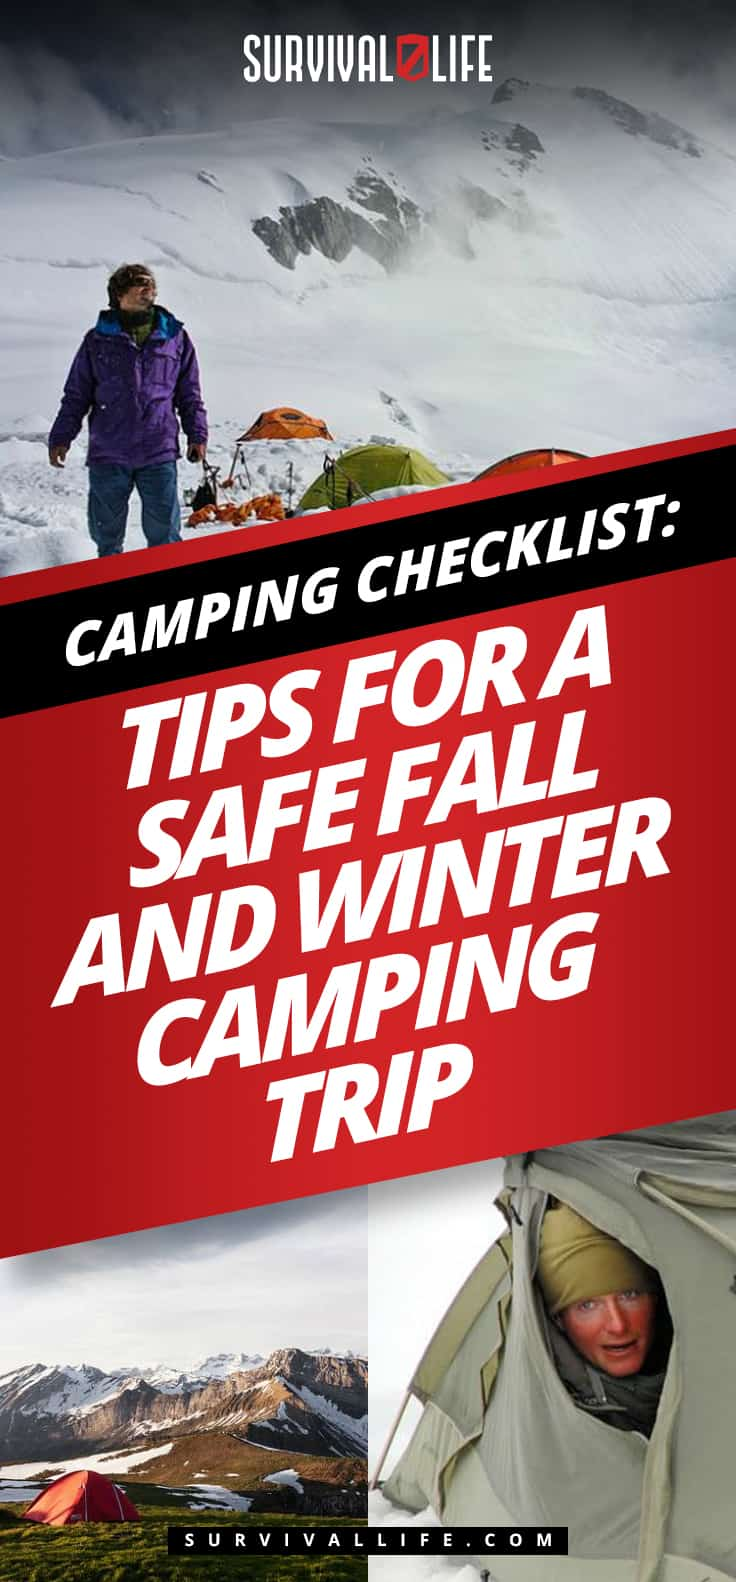 Camping Checklist: Tips for a Safe Fall and Winter Camping Trip